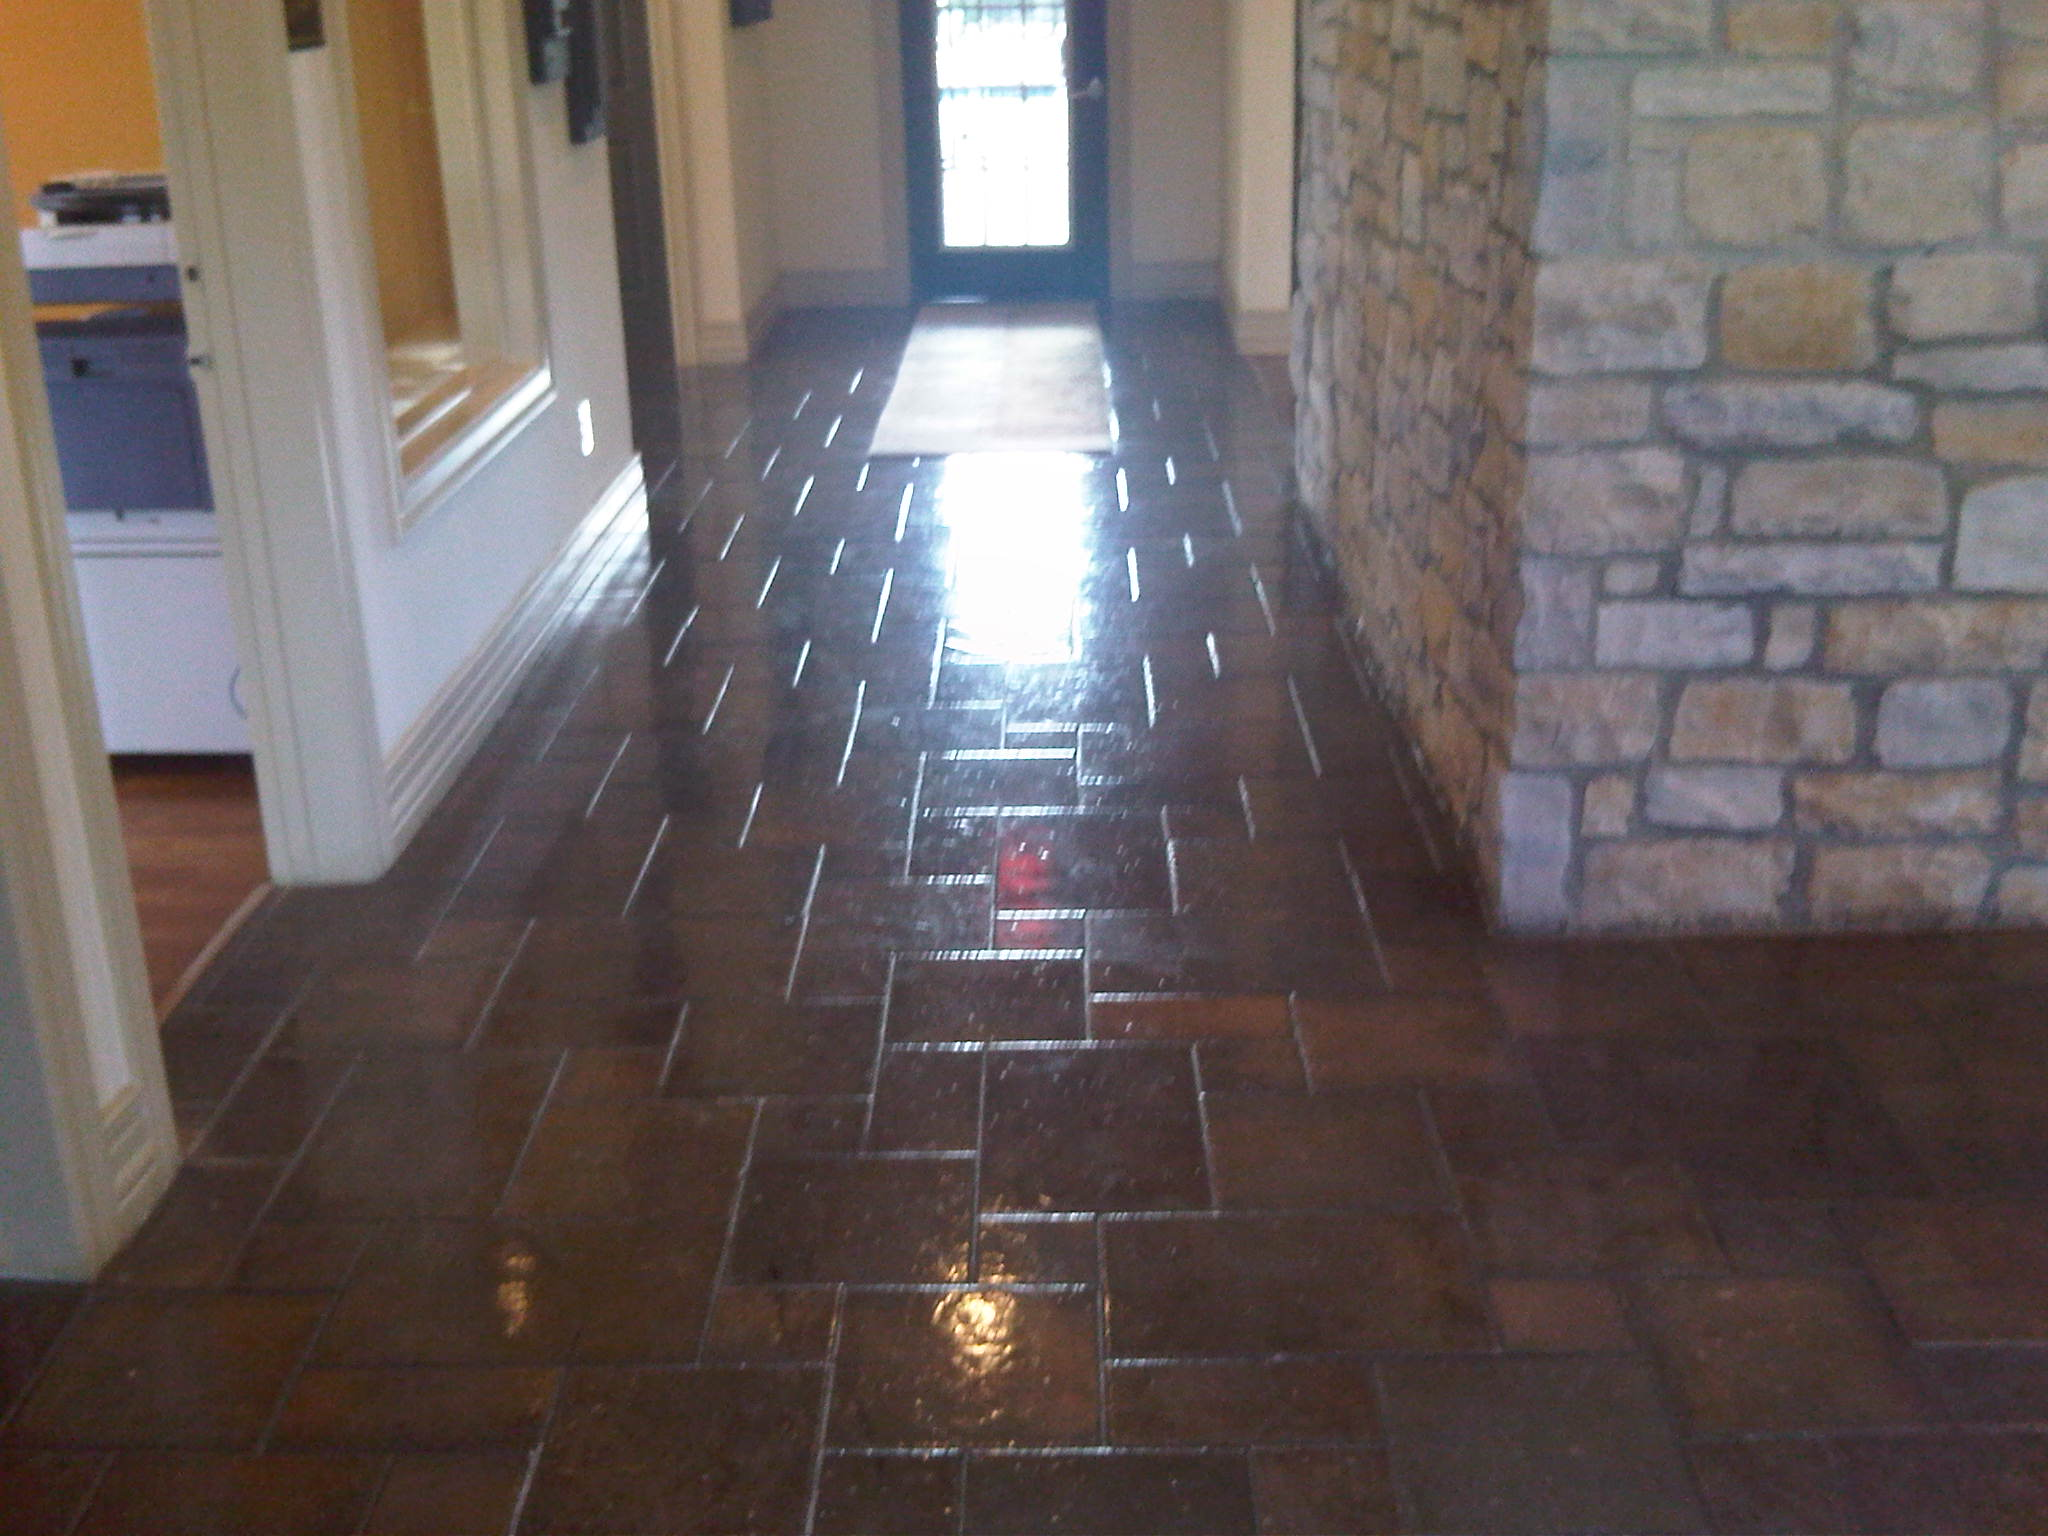 Title and Grout Cleaning Services in Plano Tx